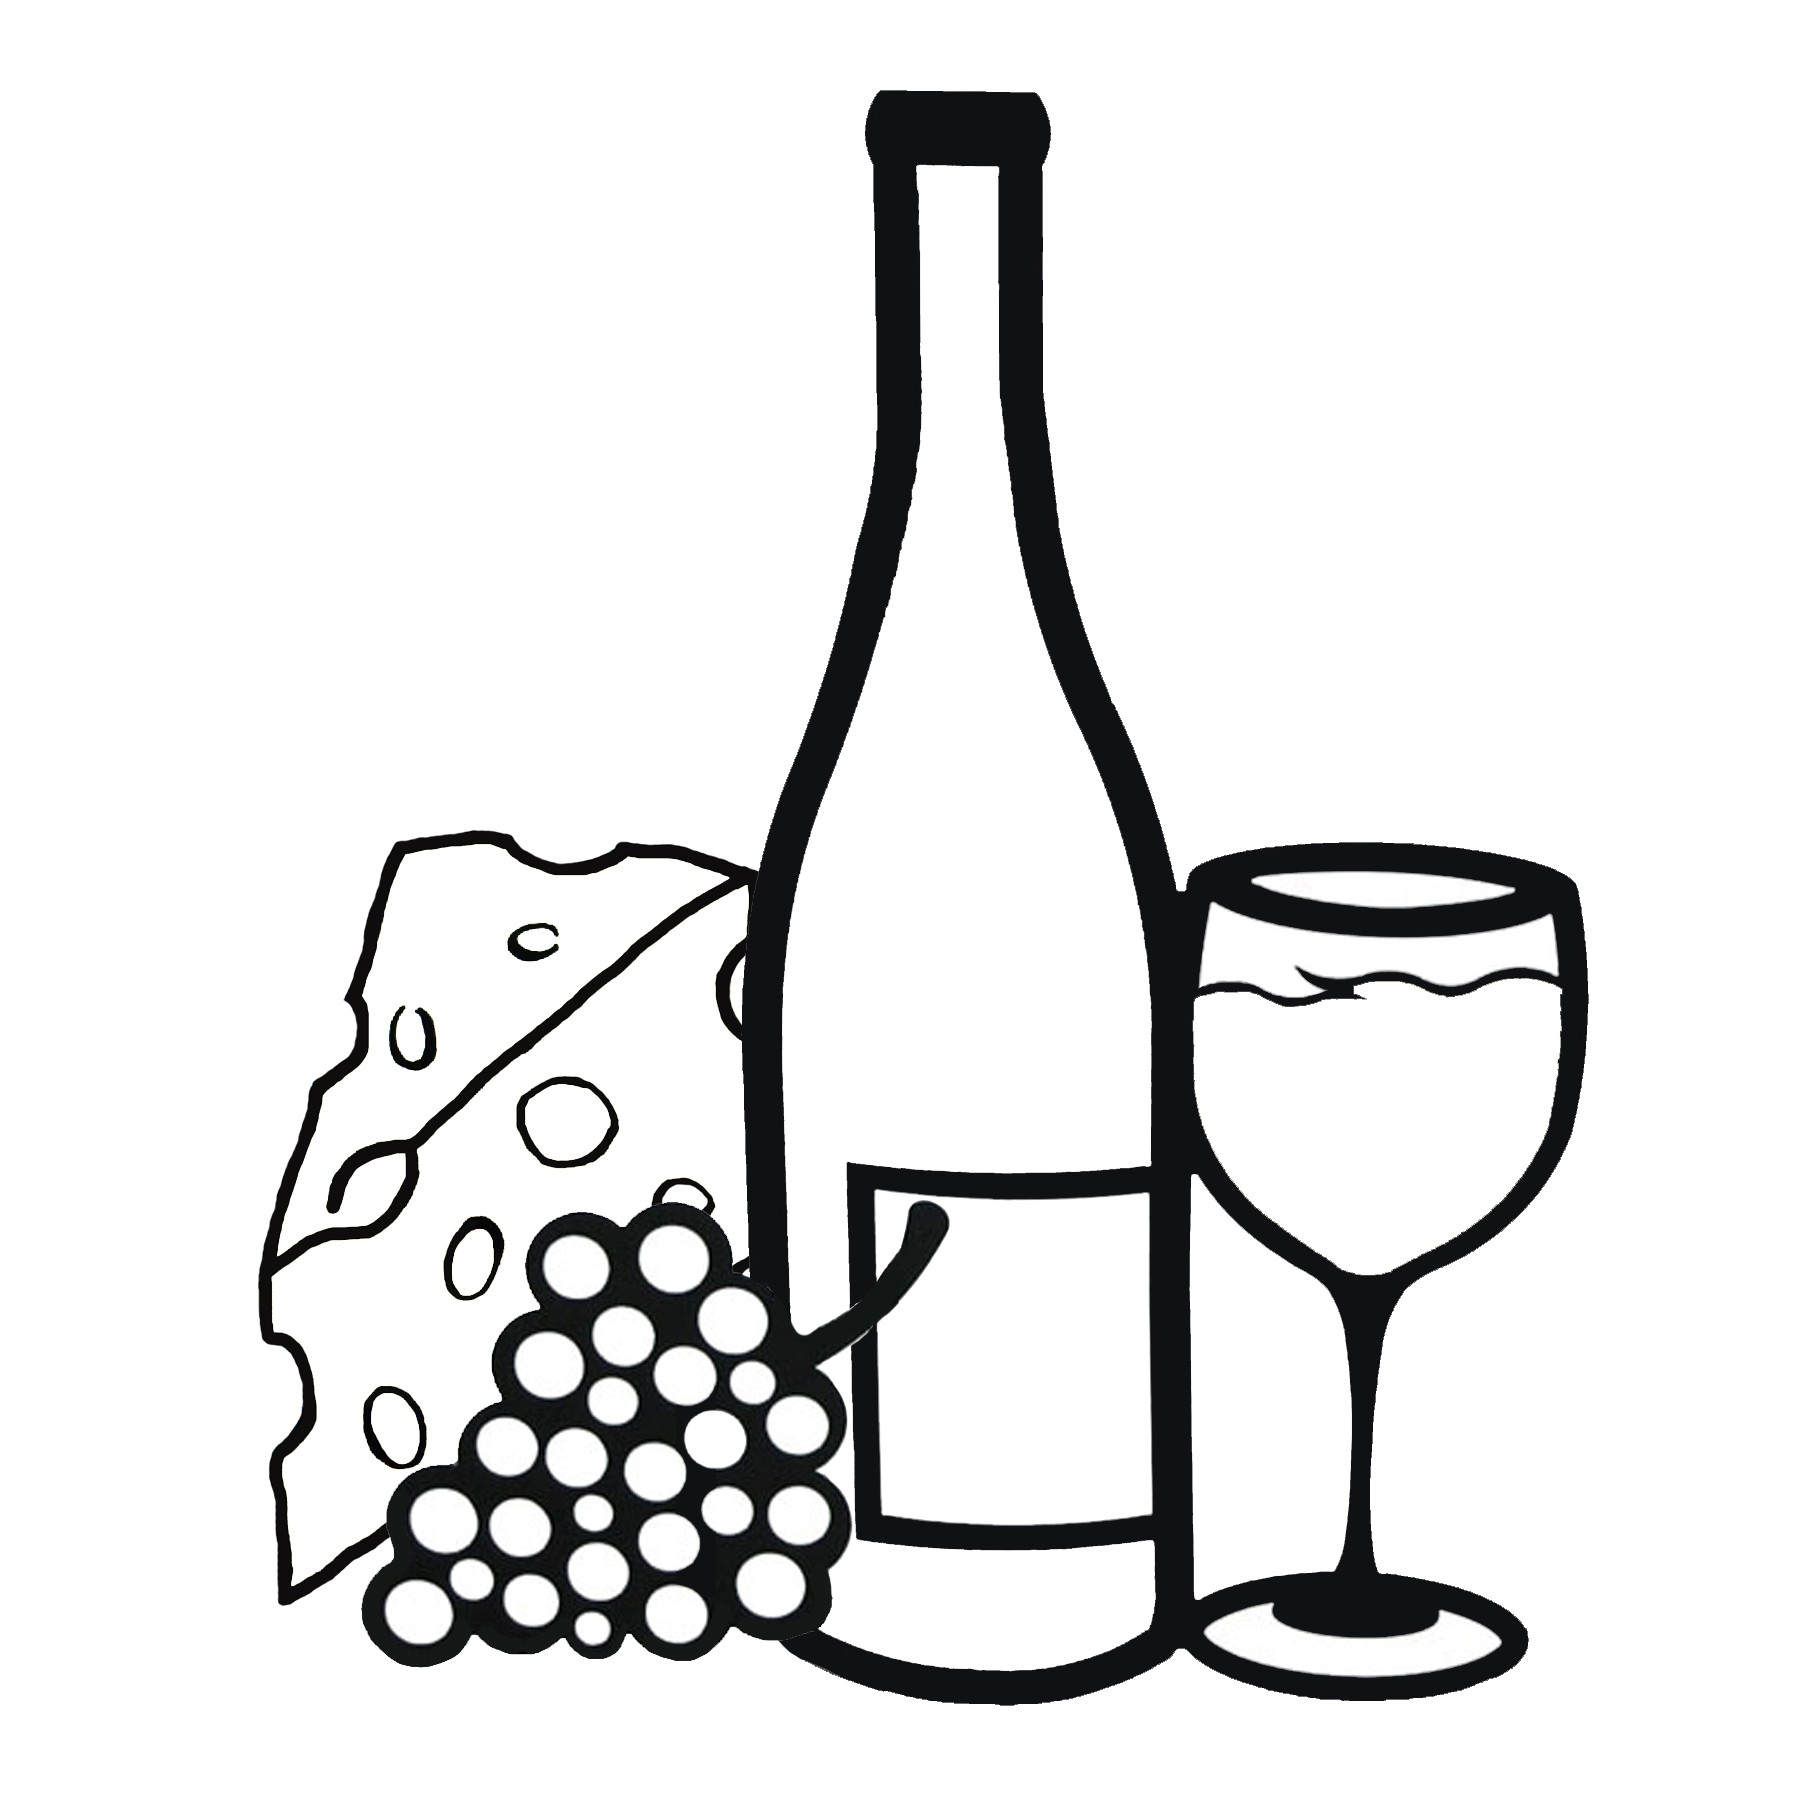 Wine bottle gallery for black and white wine clip art 2 image